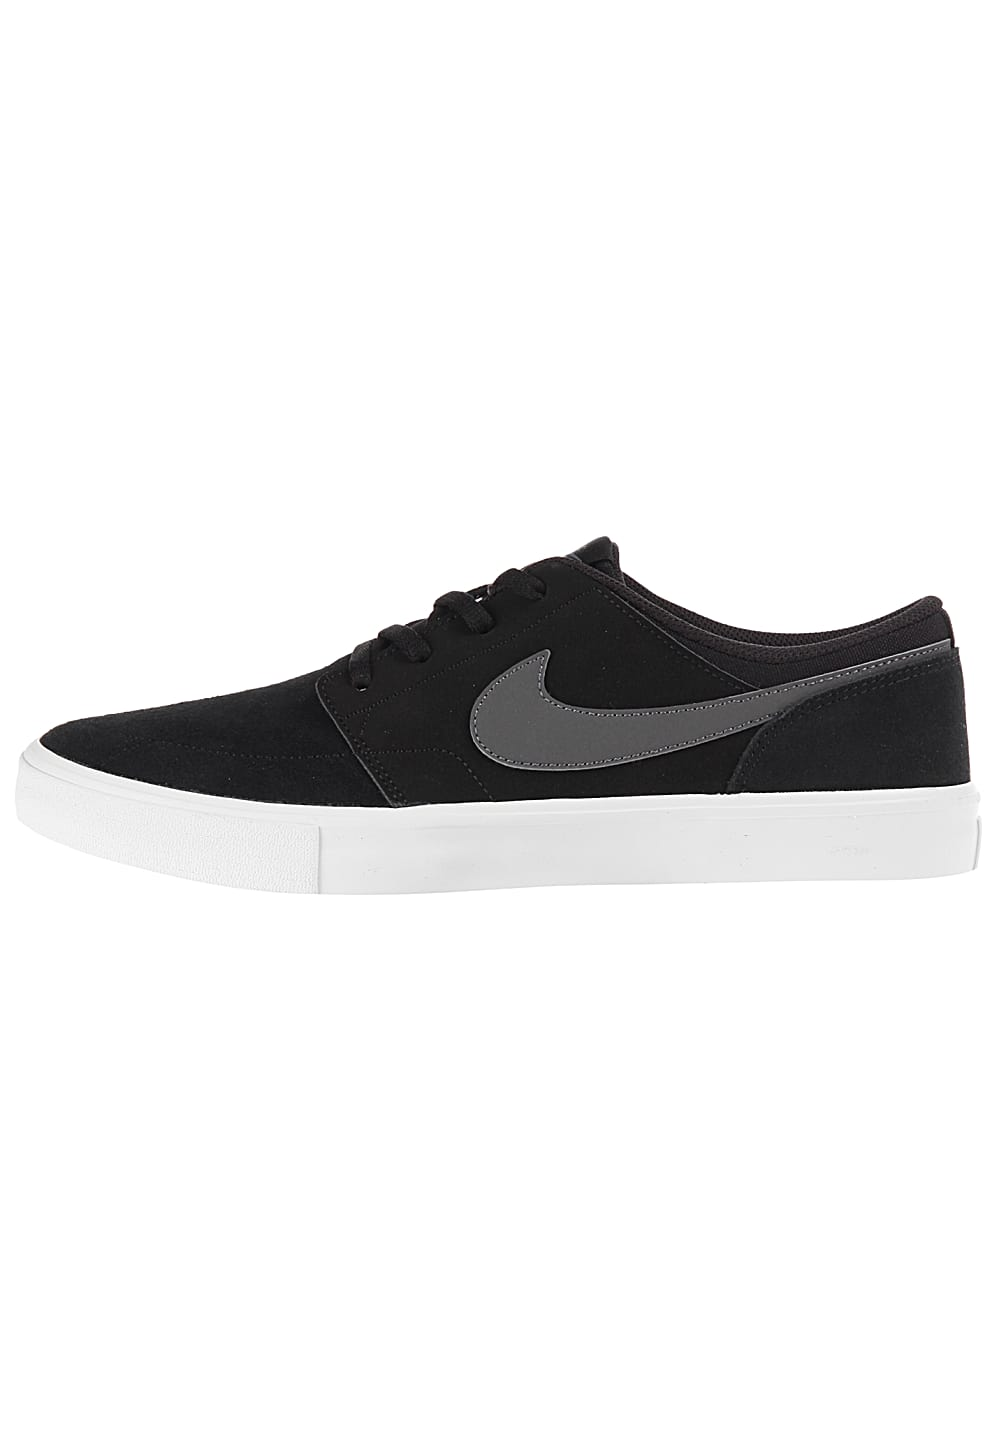 new images of pretty cheap many fashionable NIKE SB Portmore II Solar - Sneaker für Herren - Schwarz